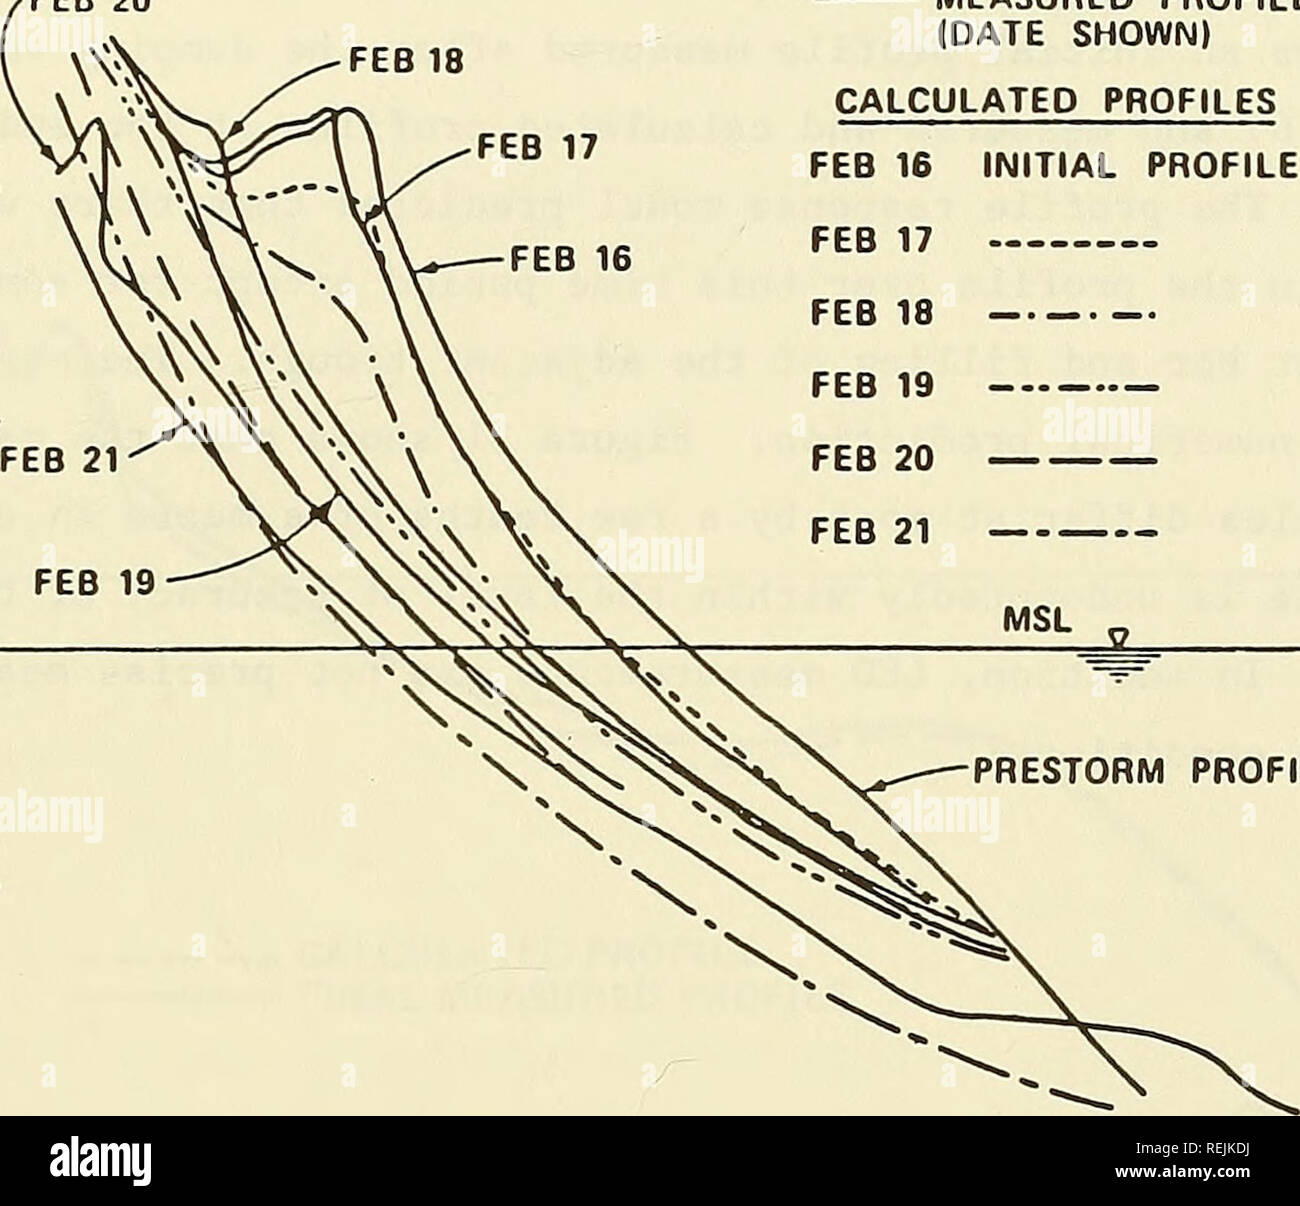 . Coastal and inlet processes numerical modeling system for Oregon Inlet, North Carolina. Coast changes; Coastal engineering; Hydrodynamics. Z 0 o MEASURED PROFILES (DATE SHOWN) CALCULATED PROFILES FEB 17 FEB 16 INITIAL PROFILE — FEB 16 FEB 17 FEB 18 FEB 19 FEB 20 v  FEB 21. PRESTORM PROFILE 20 60 80 100 120 OFFSHORE DISTANCE. METERS 140 160 Figure 29. Comparison of calculated and measured beach profiles for Leadbetter Beach, California, 1980 initial profile (16 February 1980); the sand size; hourly values of signif- icant wave height, period, and direction; and hourly tide levels. Tidal fluc Stock Photo